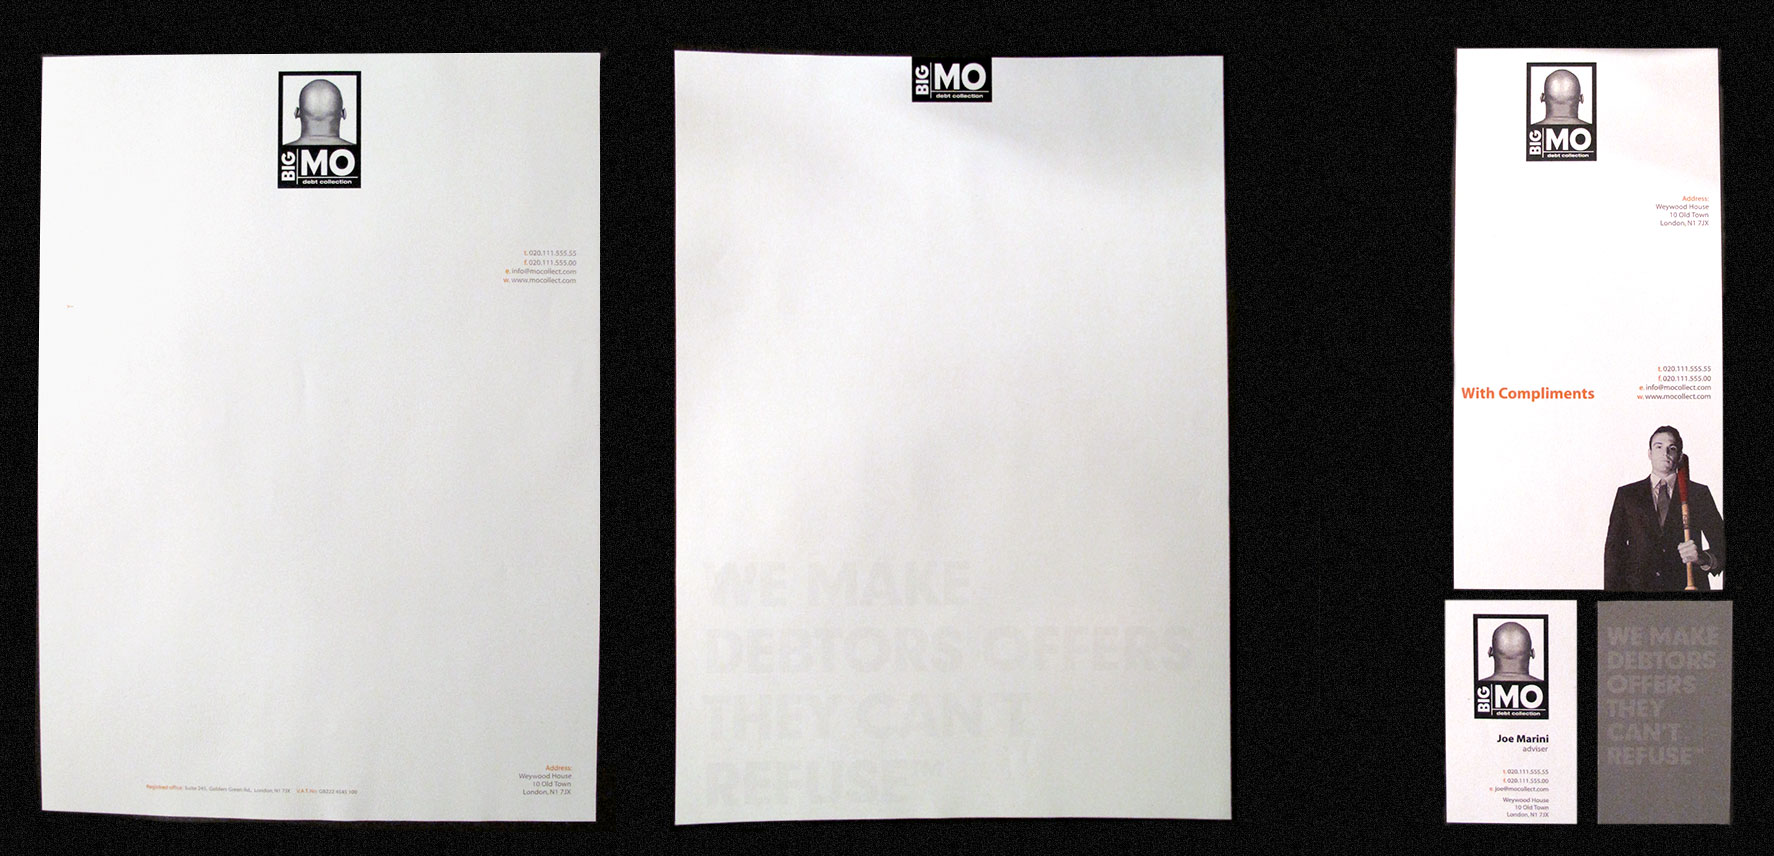 Big Mo Stationery; letterhead, compslip and business card